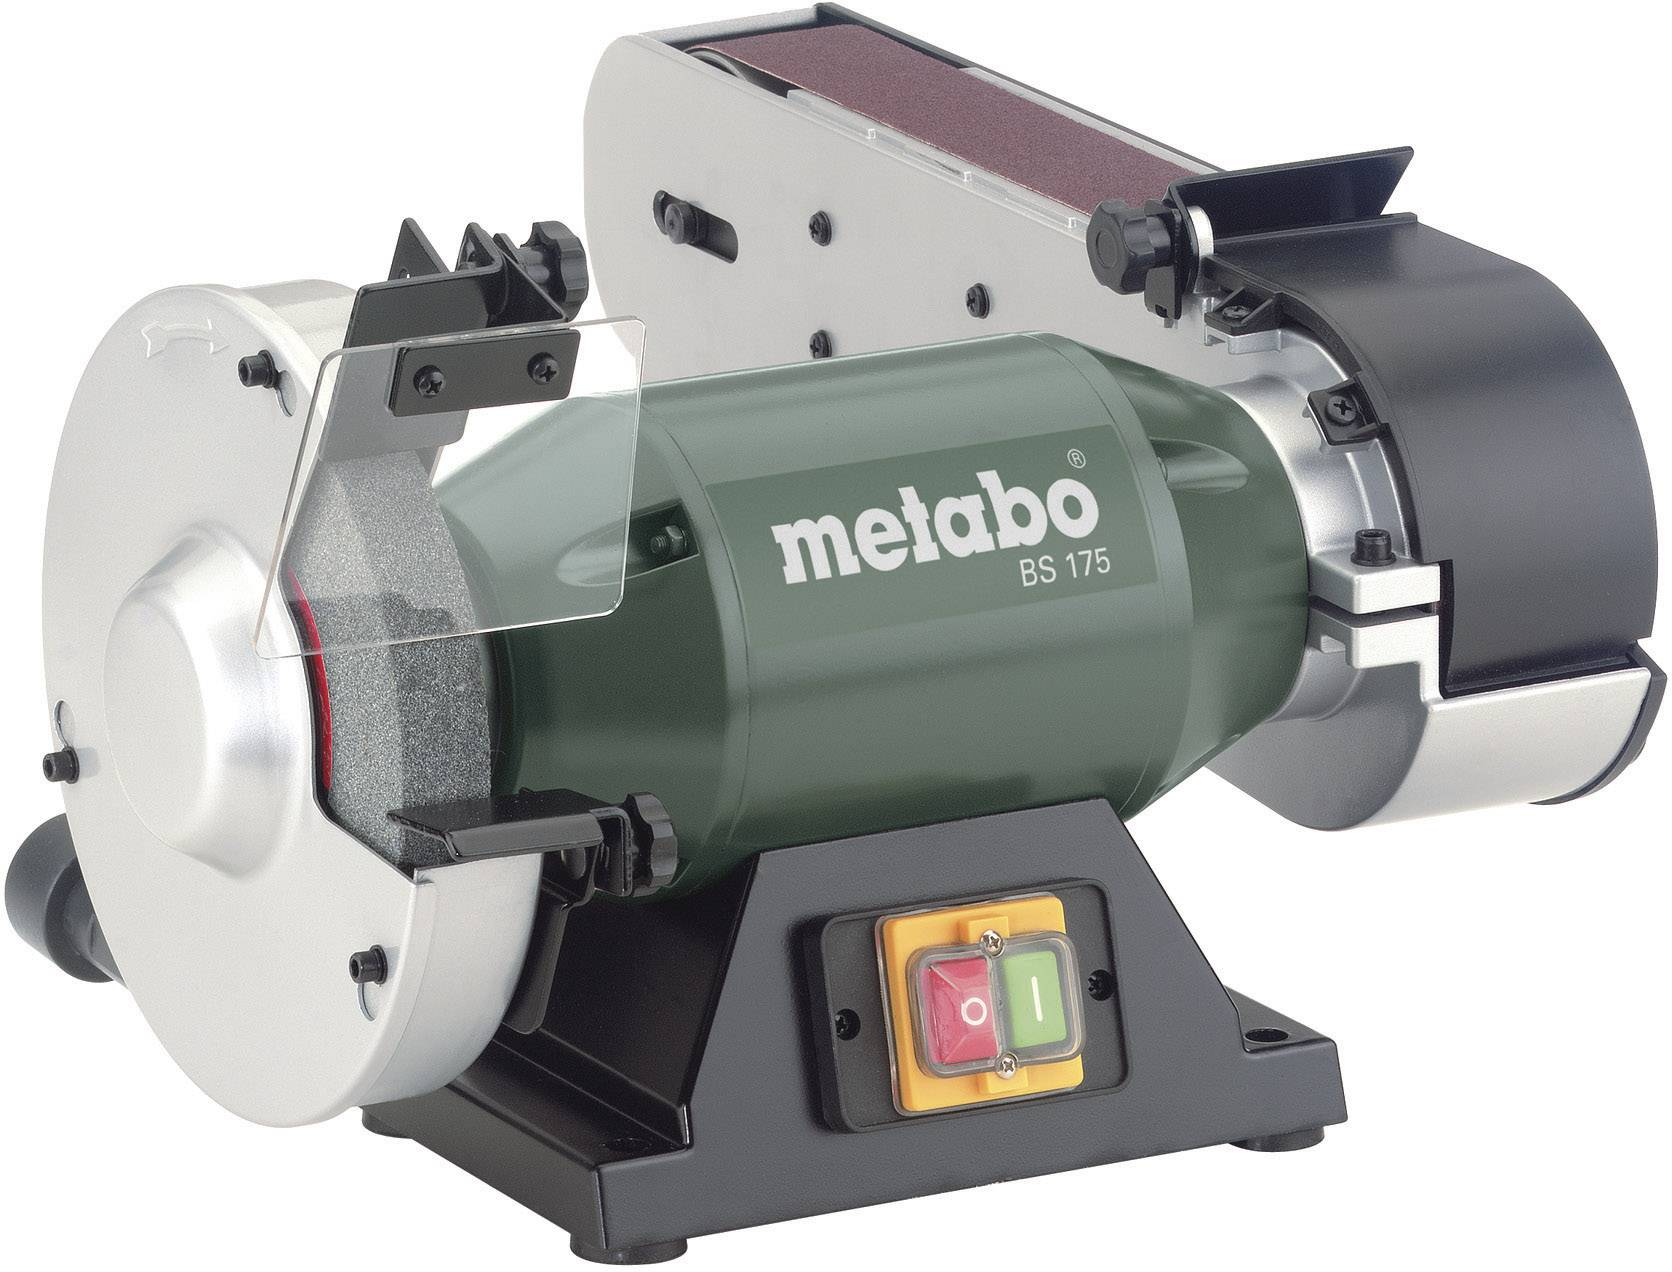 Stupendous Metabo Bs 175 Belt And Orbit Sander 500 W 175 Mm 601750000 Gmtry Best Dining Table And Chair Ideas Images Gmtryco